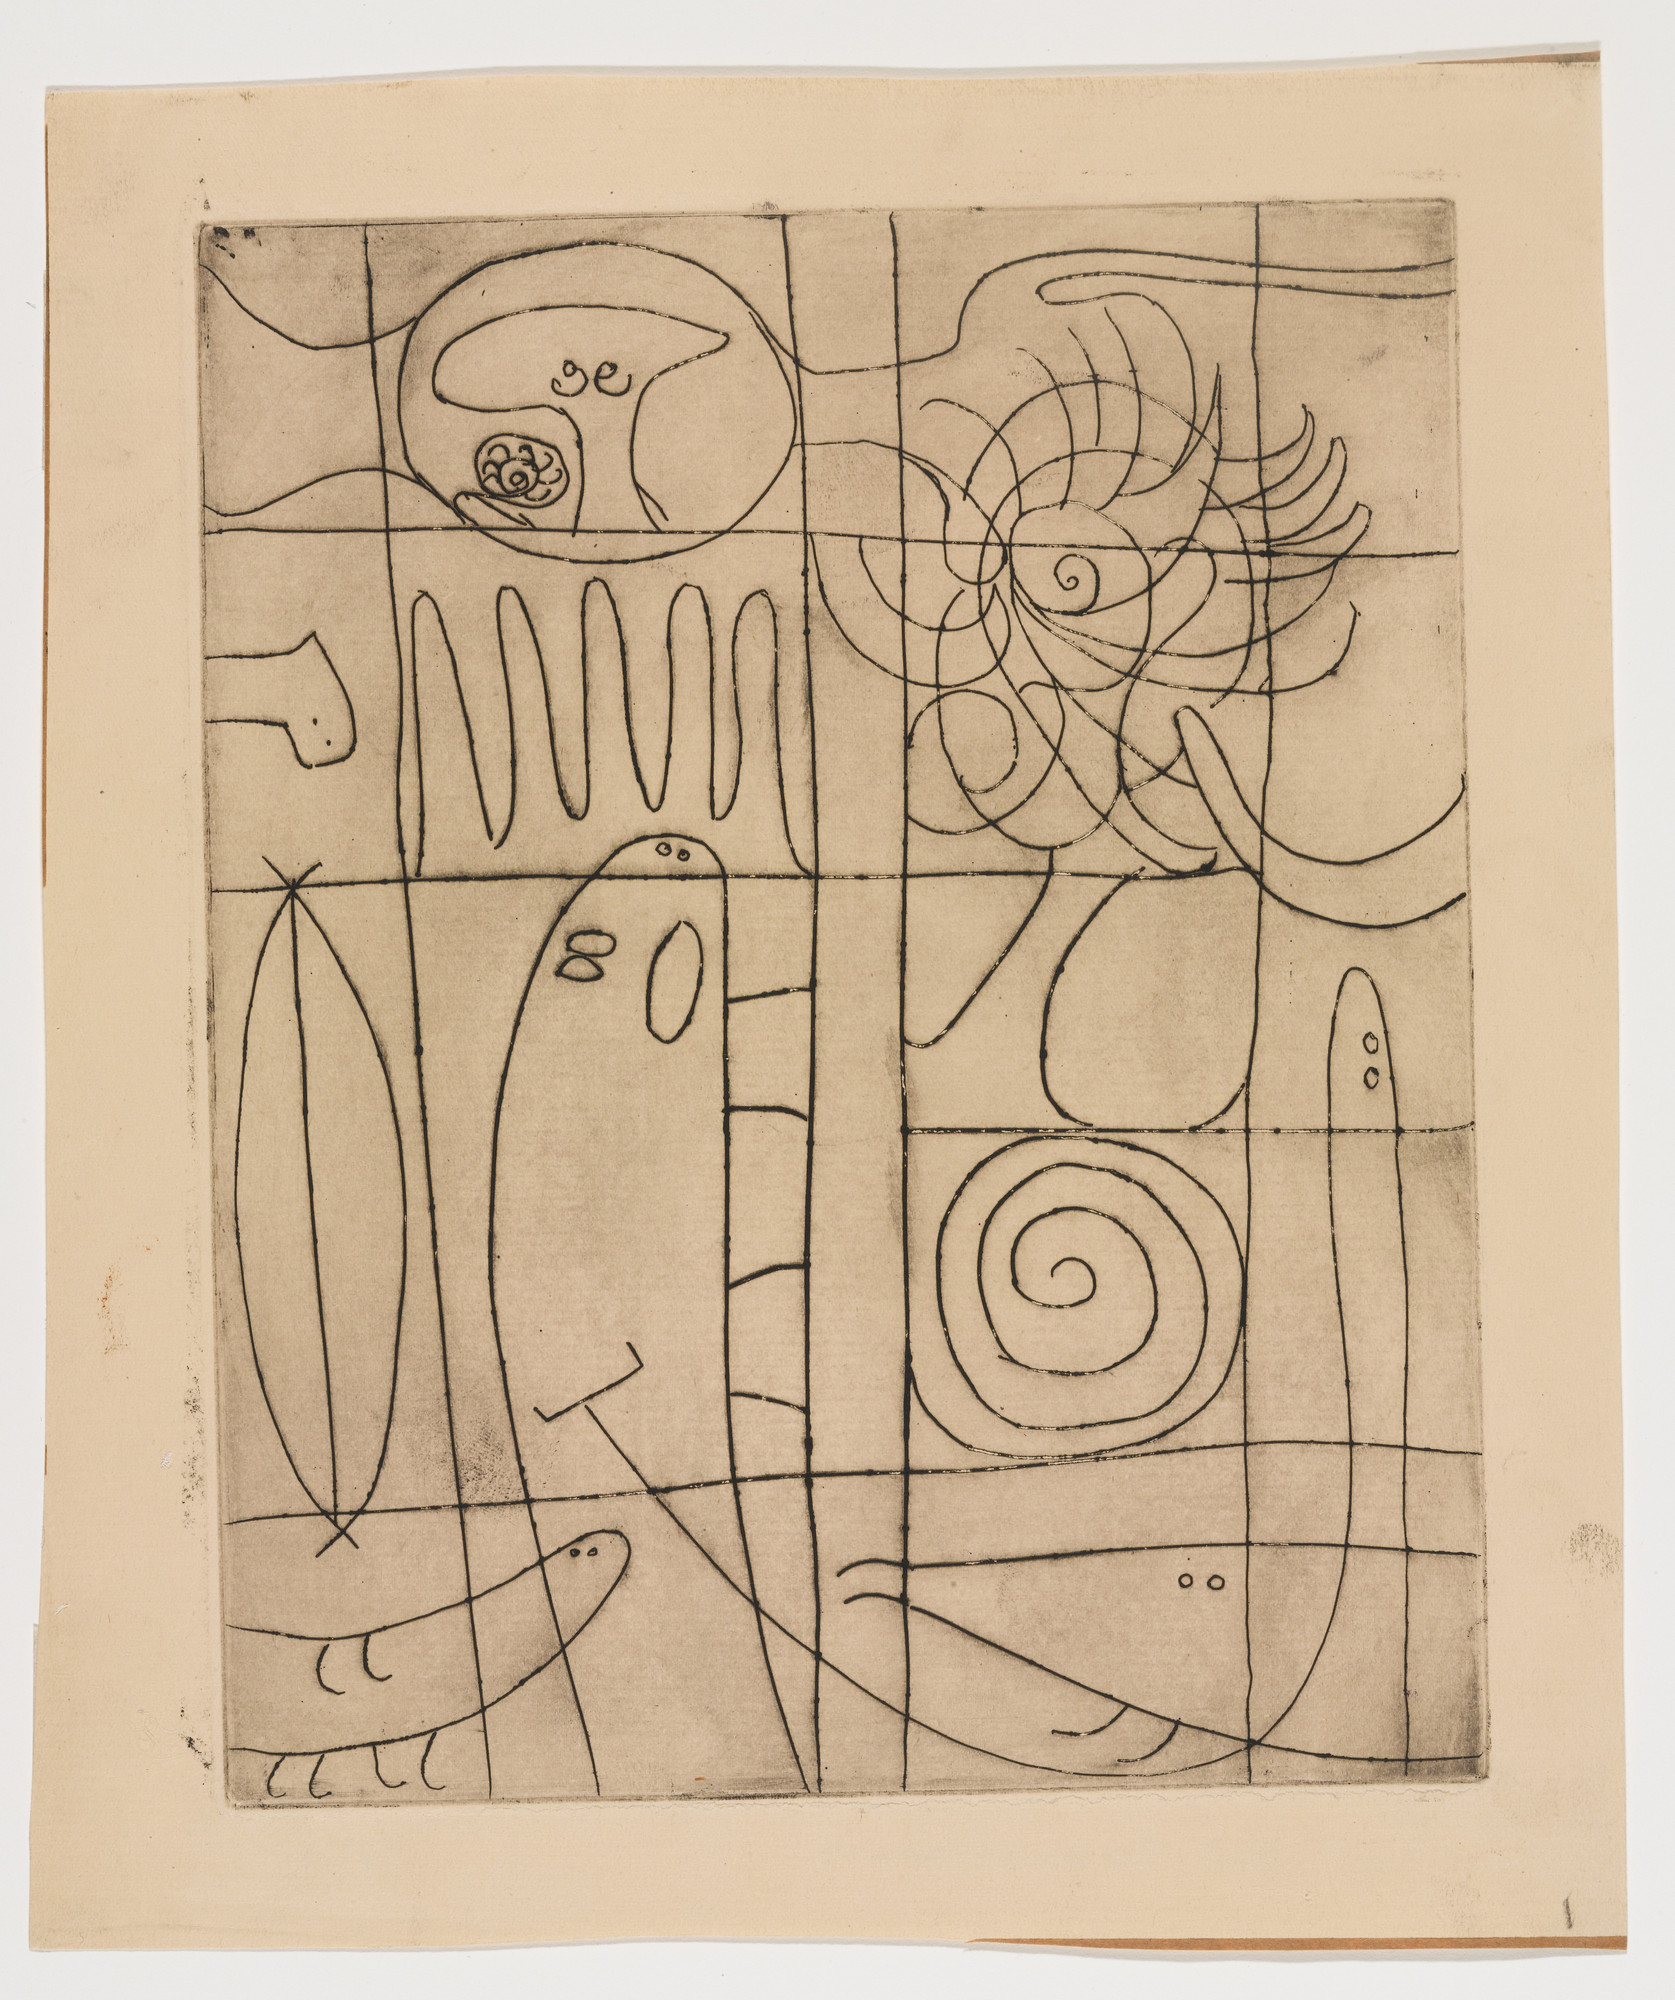 Adolph Gottlieb. Untitled (E # E). c. 1945